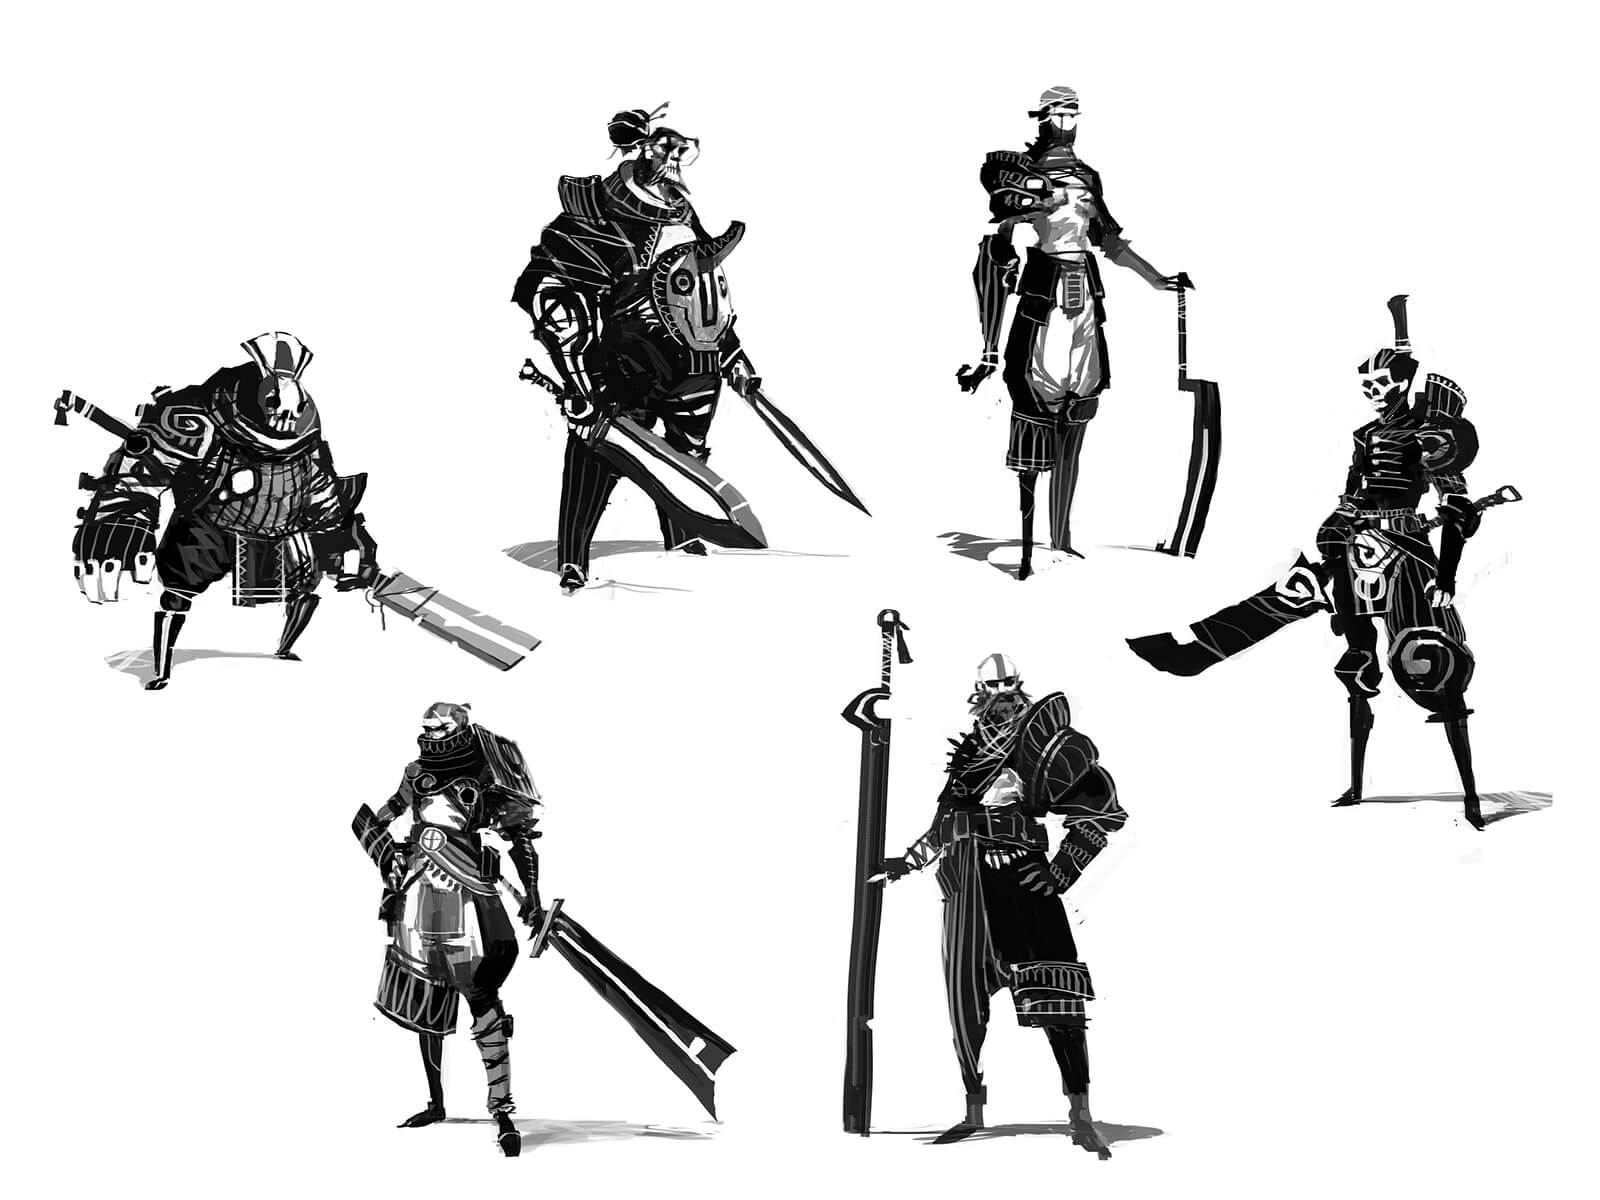 Black-and-white sketches of fearsome warriors posing with their oversized swords in ornate battle gear.